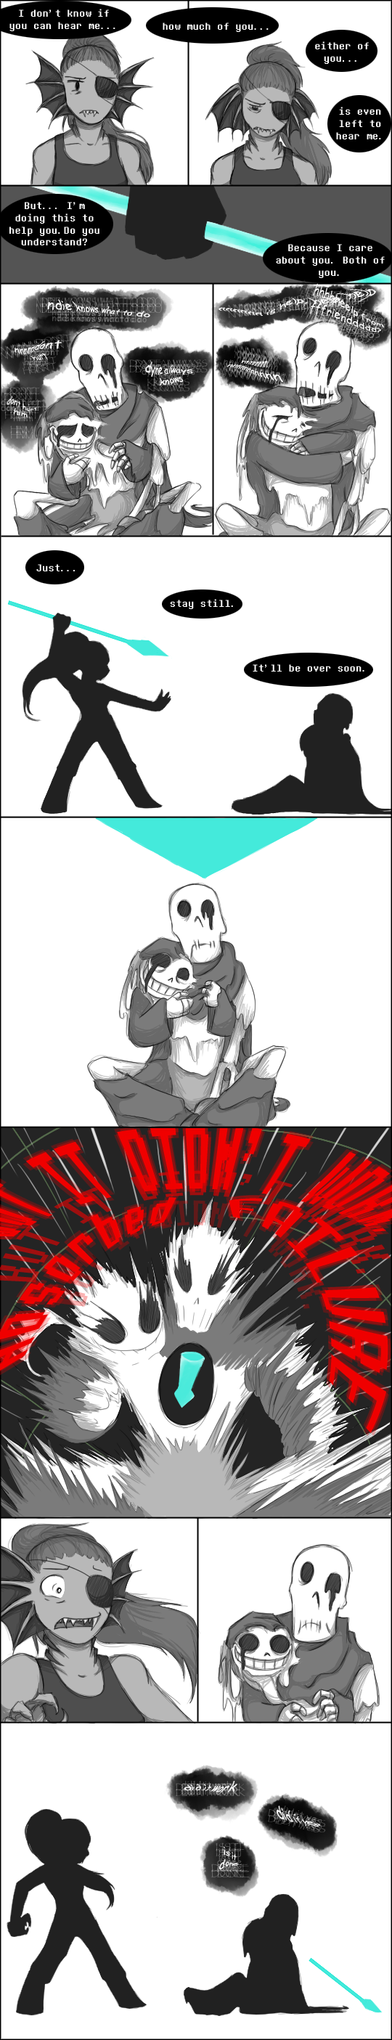 [UNDERTALE SPOILERS] We will live forever by zarla